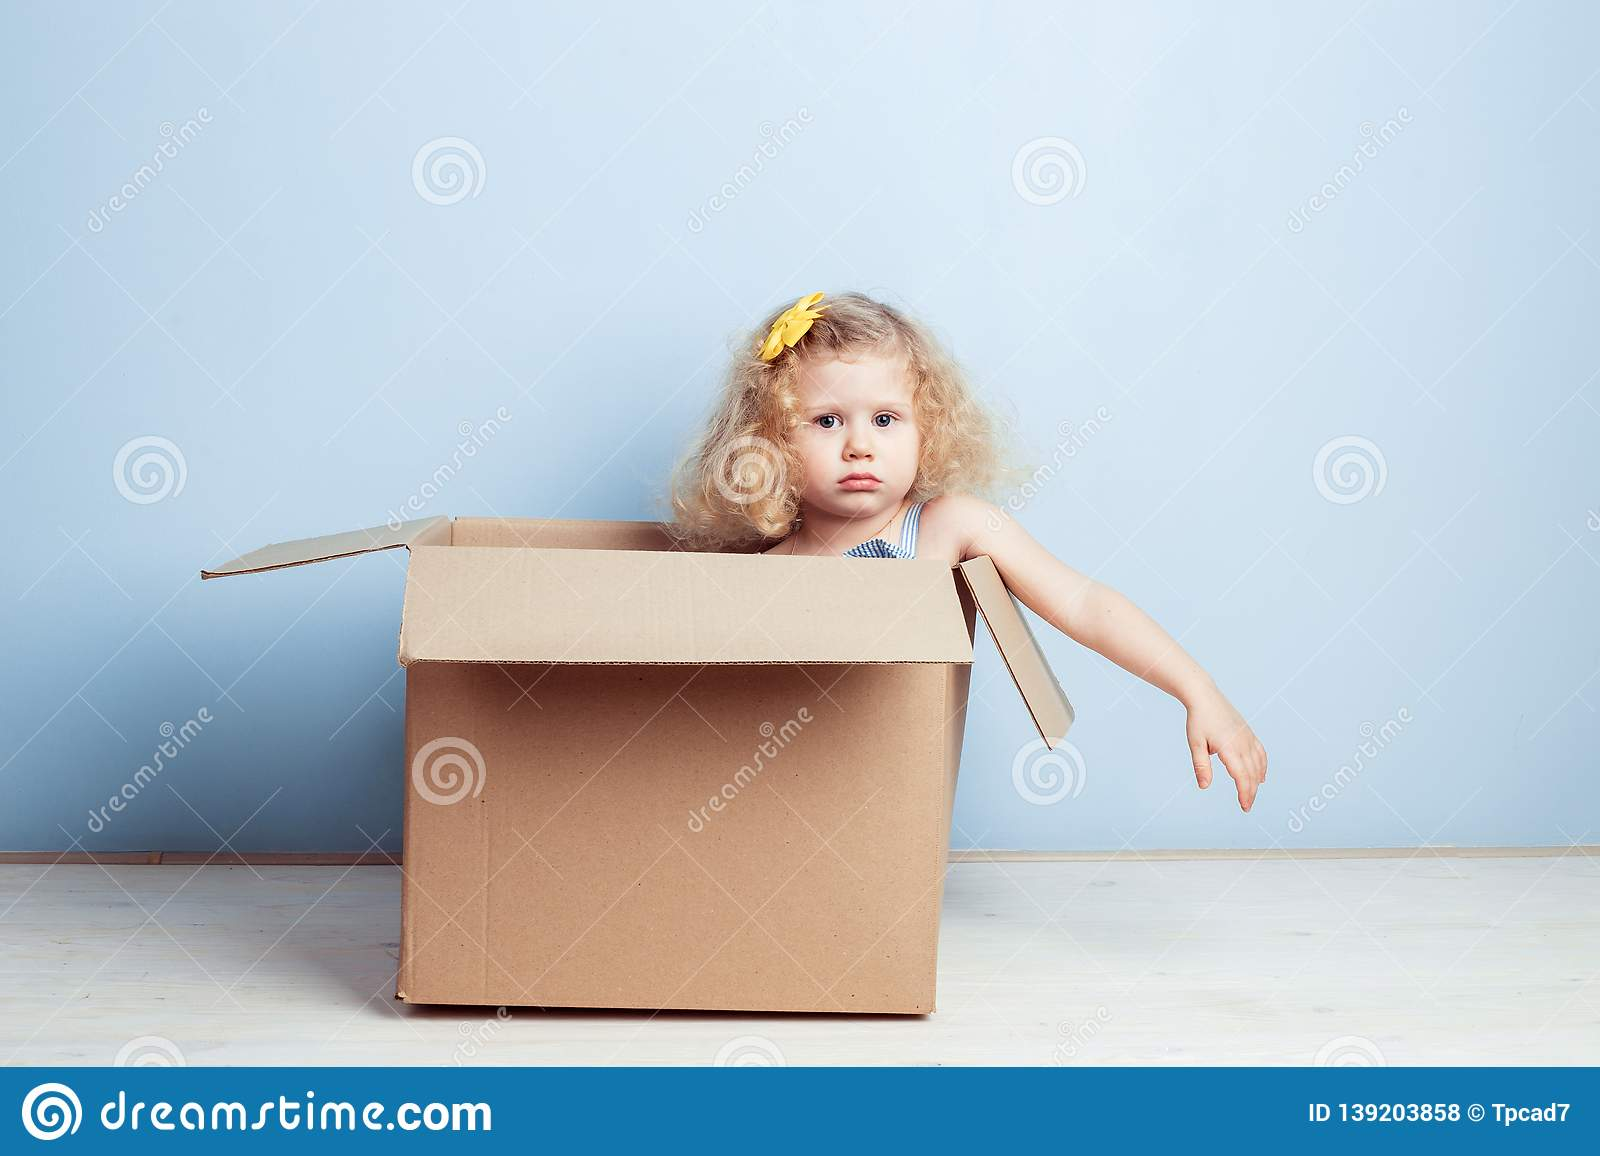 Funny little curly girl with yellow flower on her hair sits in the cardboard box on the background of blue wall.